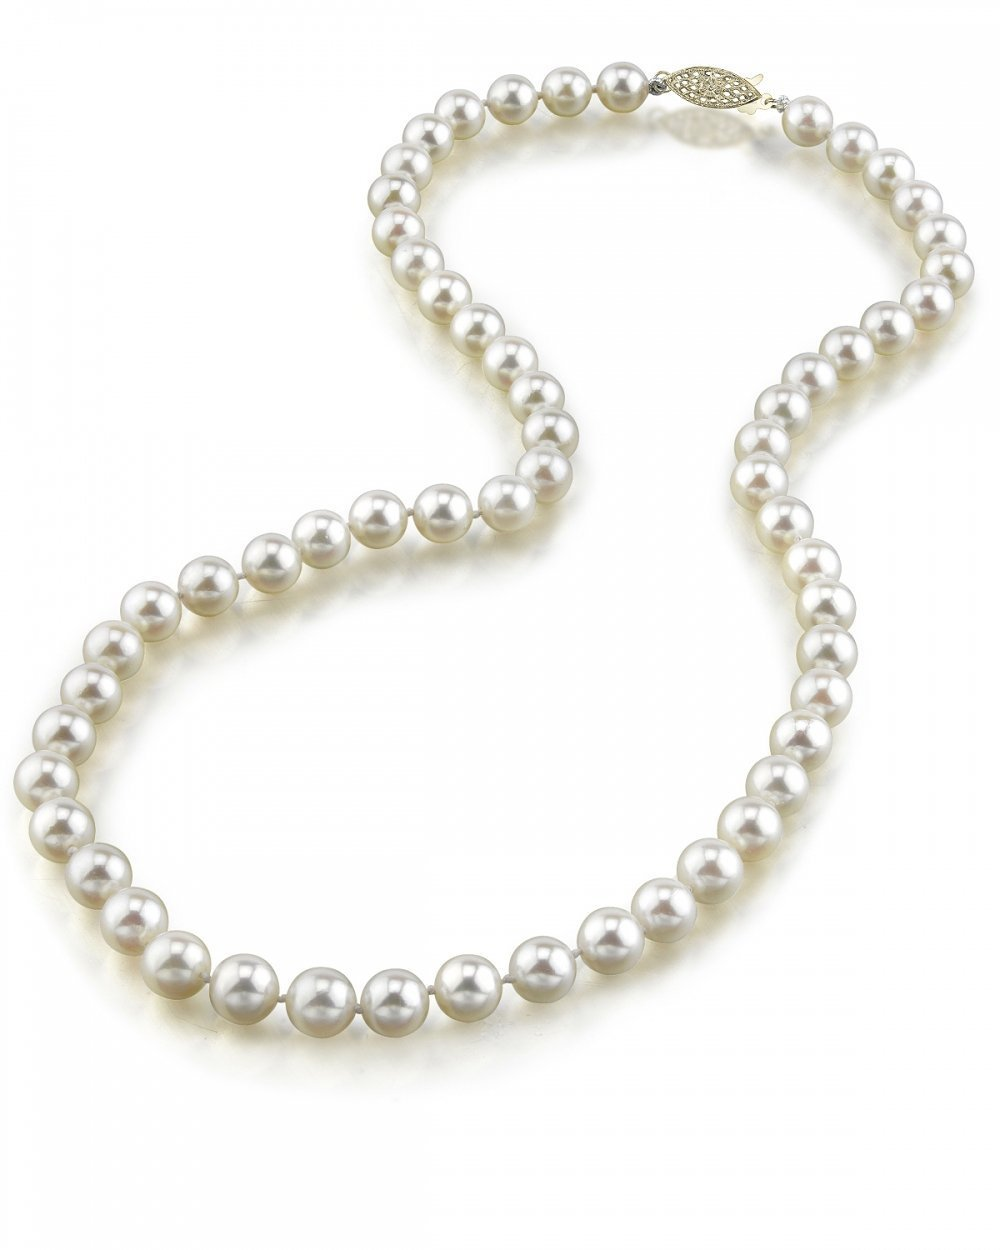 THE PEARL SOURCE 14K Gold 6.0-6.5mm Round Genuine White Japanese Akoya Saltwater Cultured Pearl Necklace in 16'' Choker Length for Women